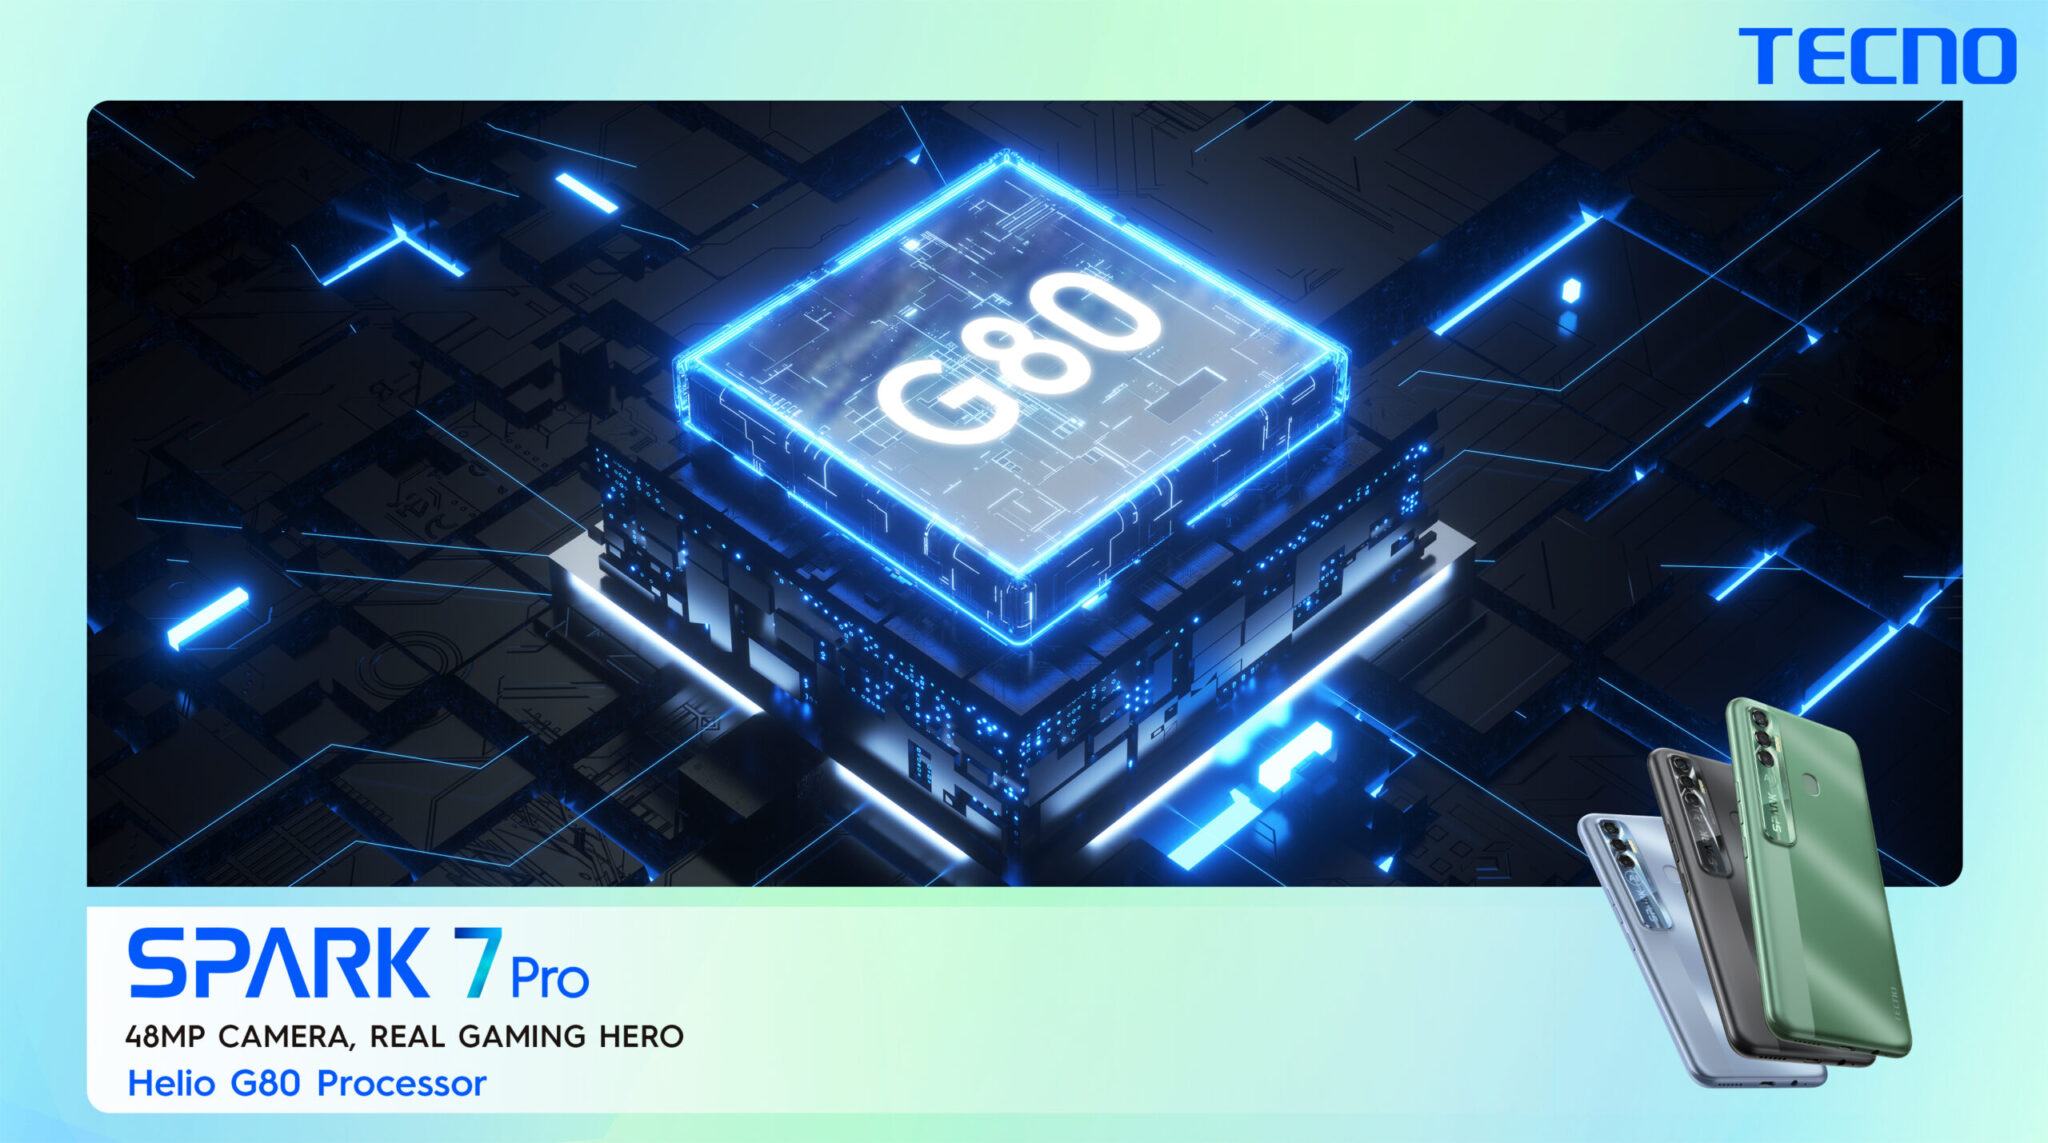 Art work 2 scaled - The Gaming King TECNO Spark 7 Pro now available in the Offline market